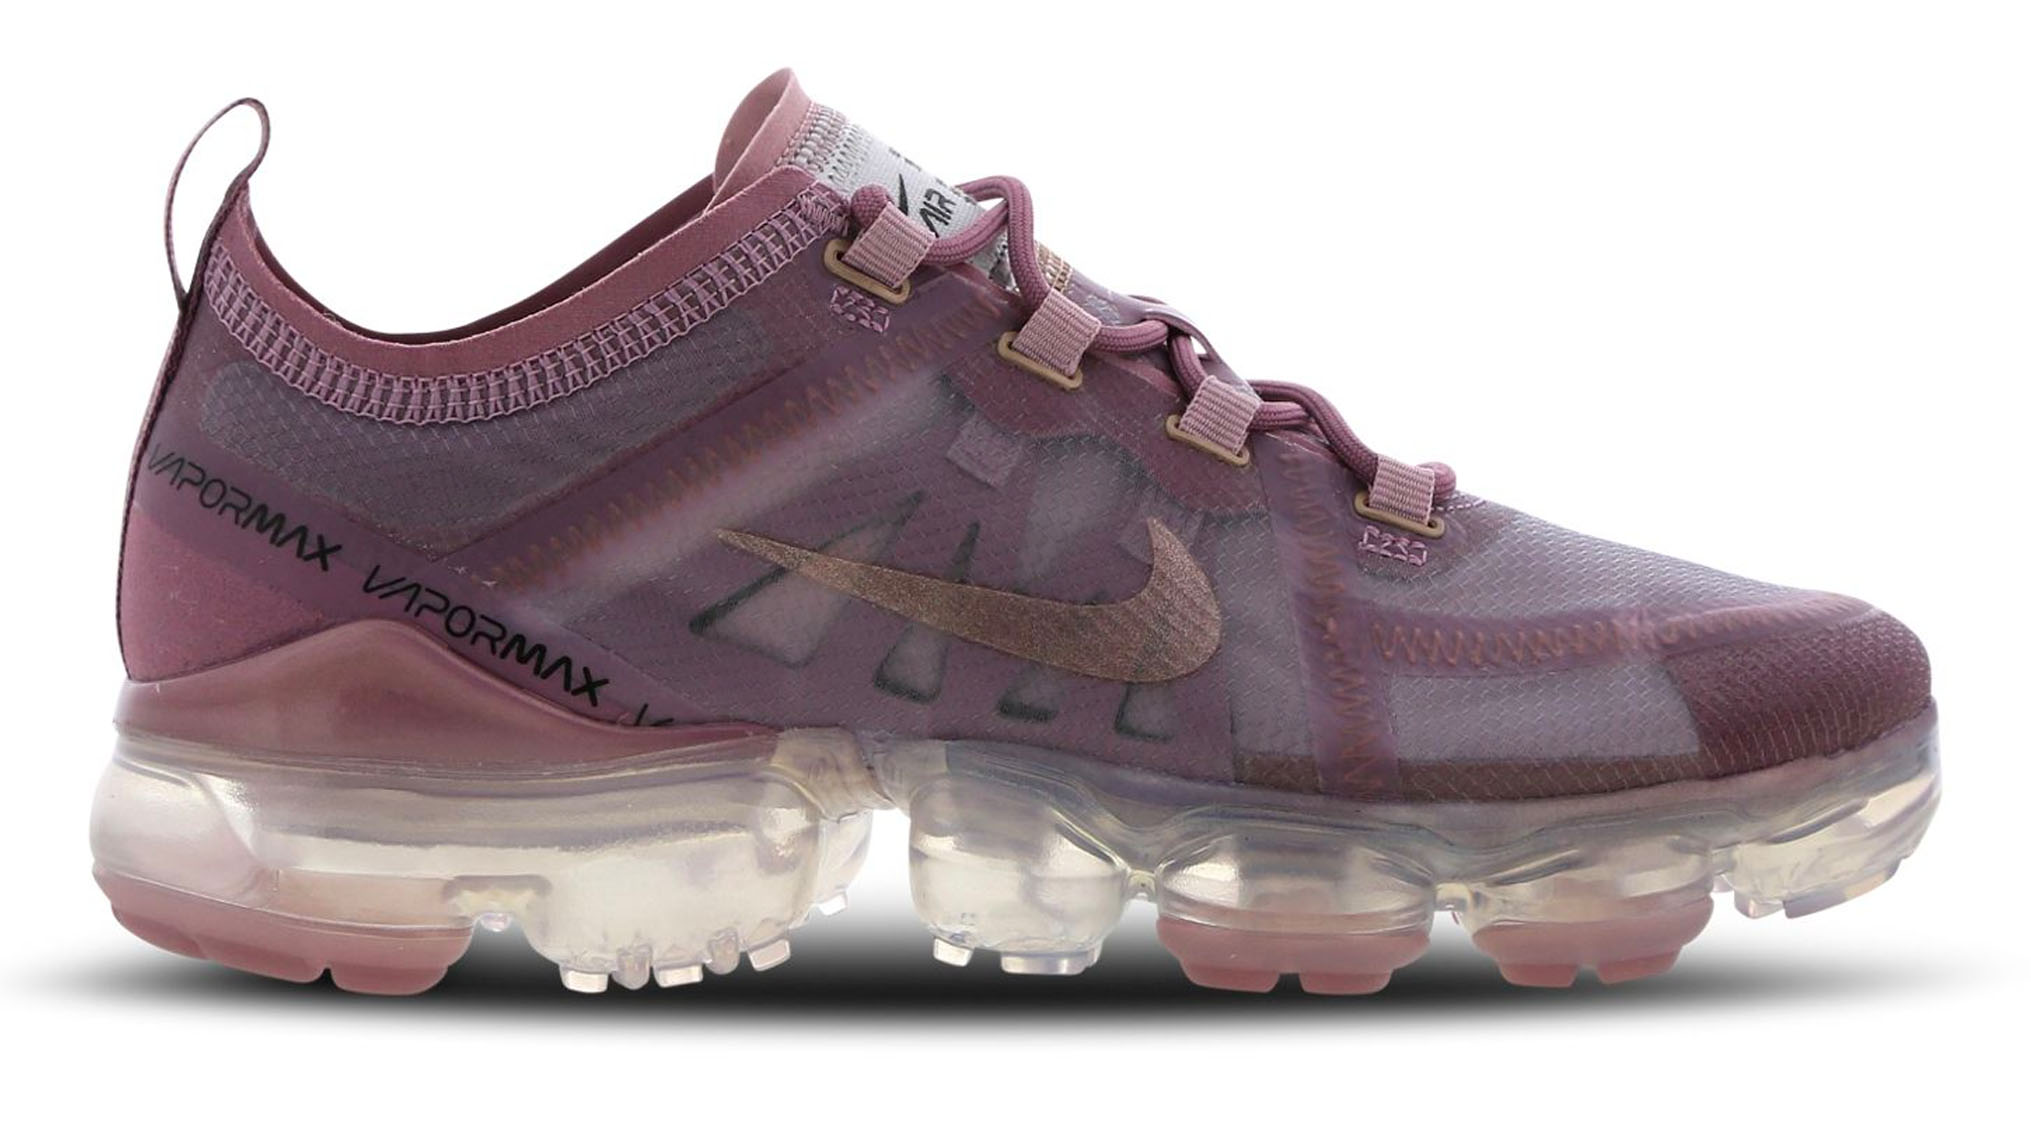 756fde0aeb Nike's Air Vapormax 2019 Has Just Arrived In 'Plum Chalk' | Closer ...